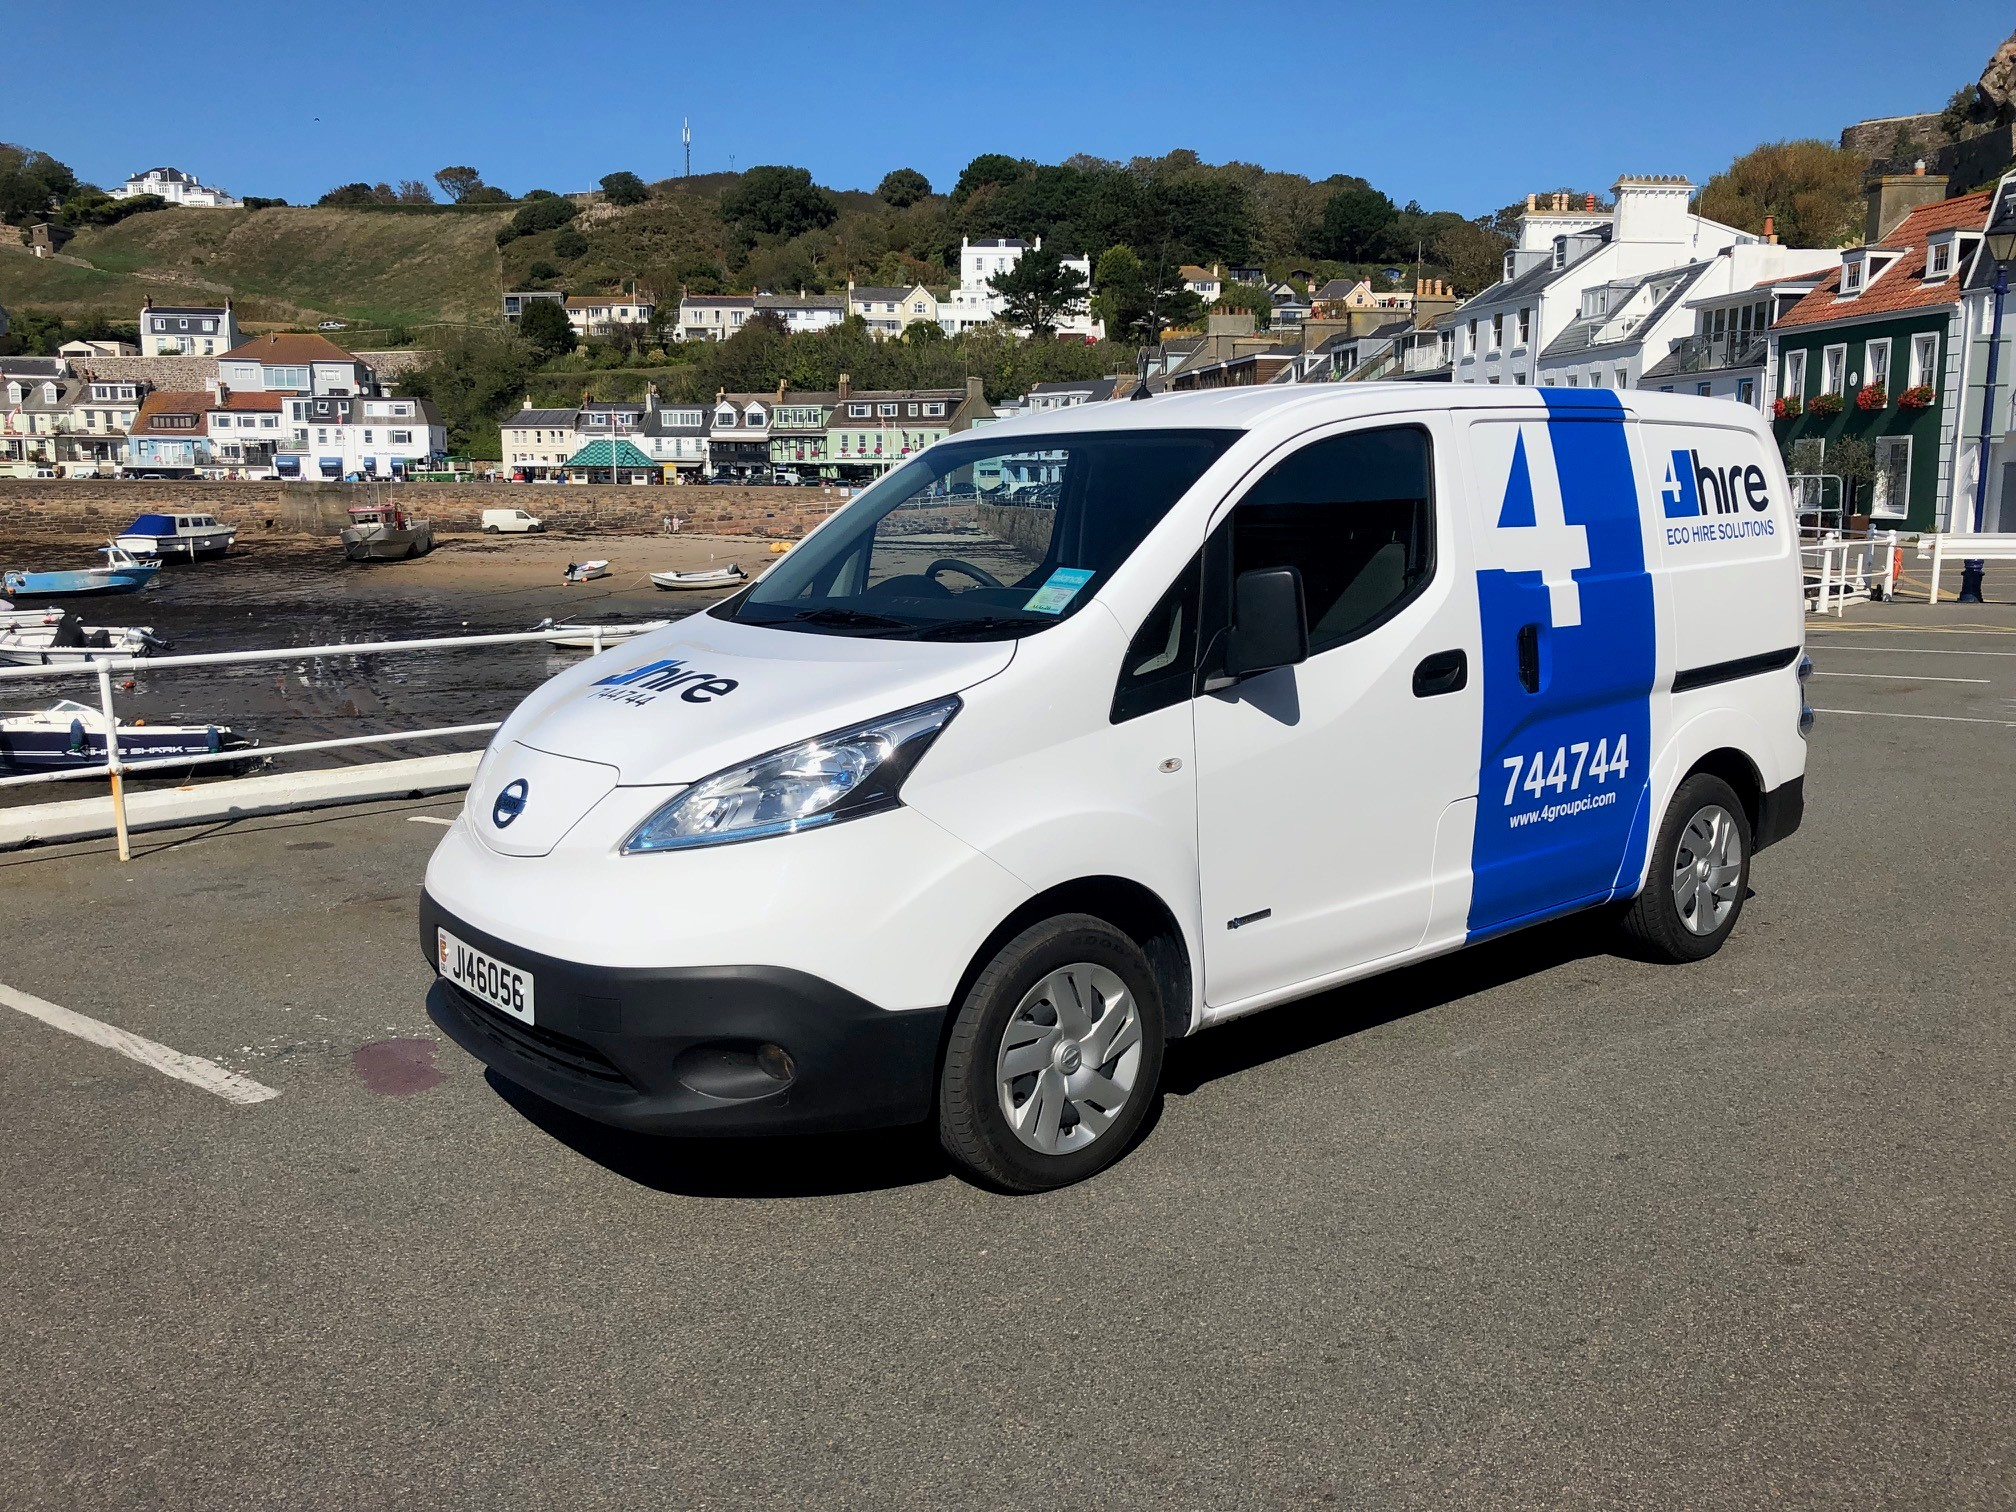 Need a van for charity or support work? Image